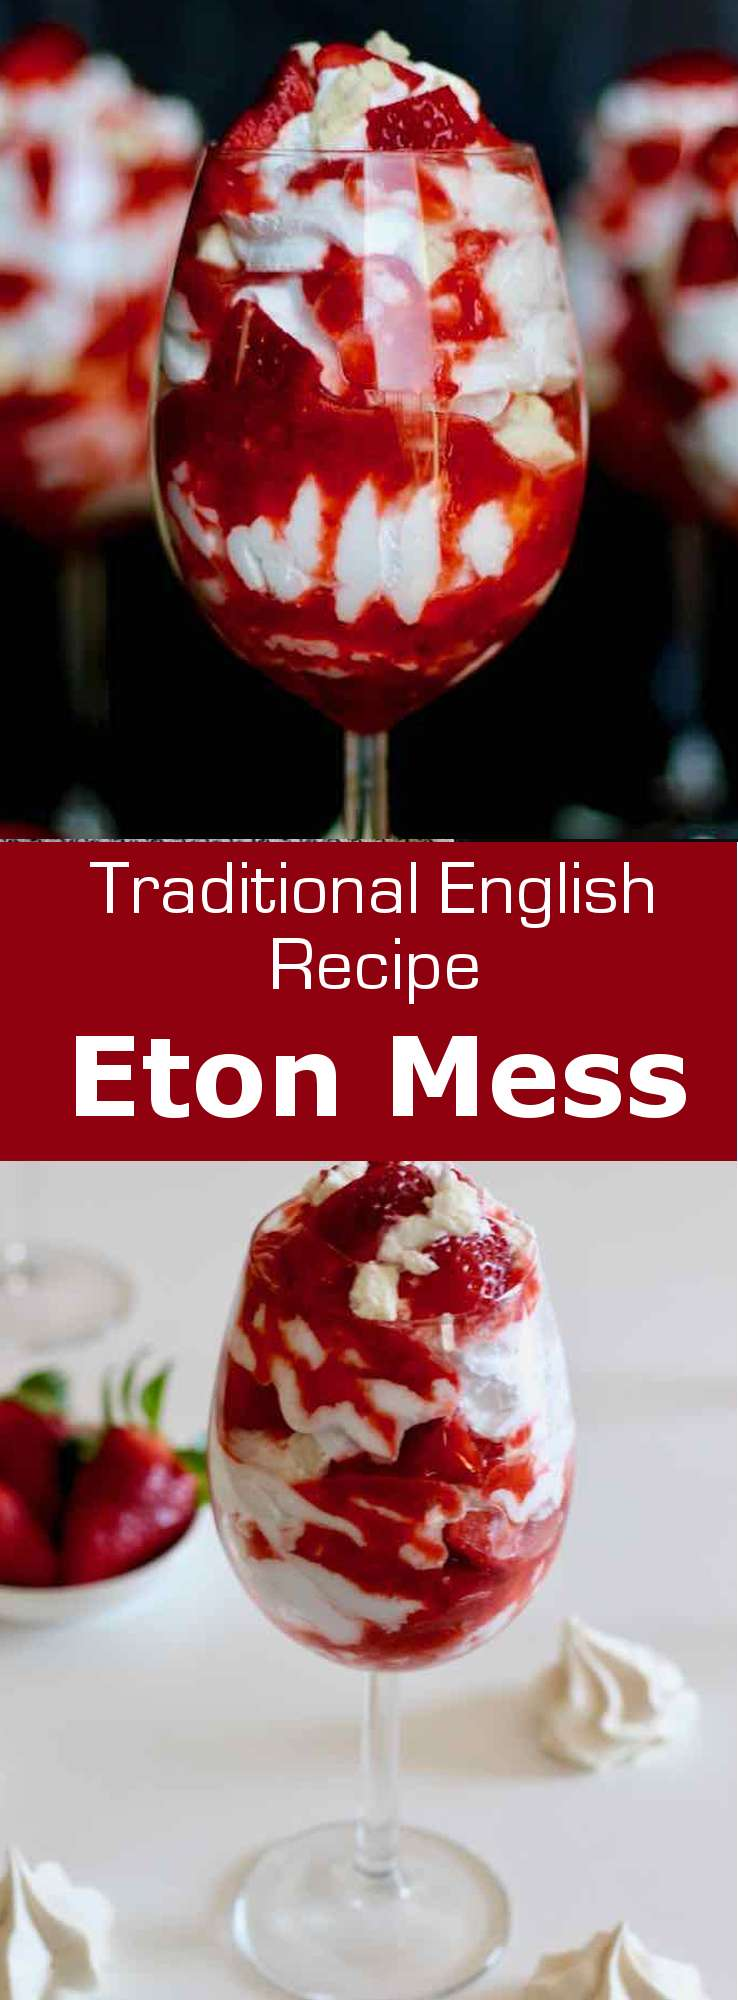 Eton mess is a traditional English dessert made from a blend of strawberries (or bananas), crushed meringue and slightly sweetened whipped cream. #UnitedKingdom #EnglishCuisine #BritishCuisine #EnglishFood #BritishFood #EnglishRecipe #BritishRecipe #WorldCuisine #196flavors